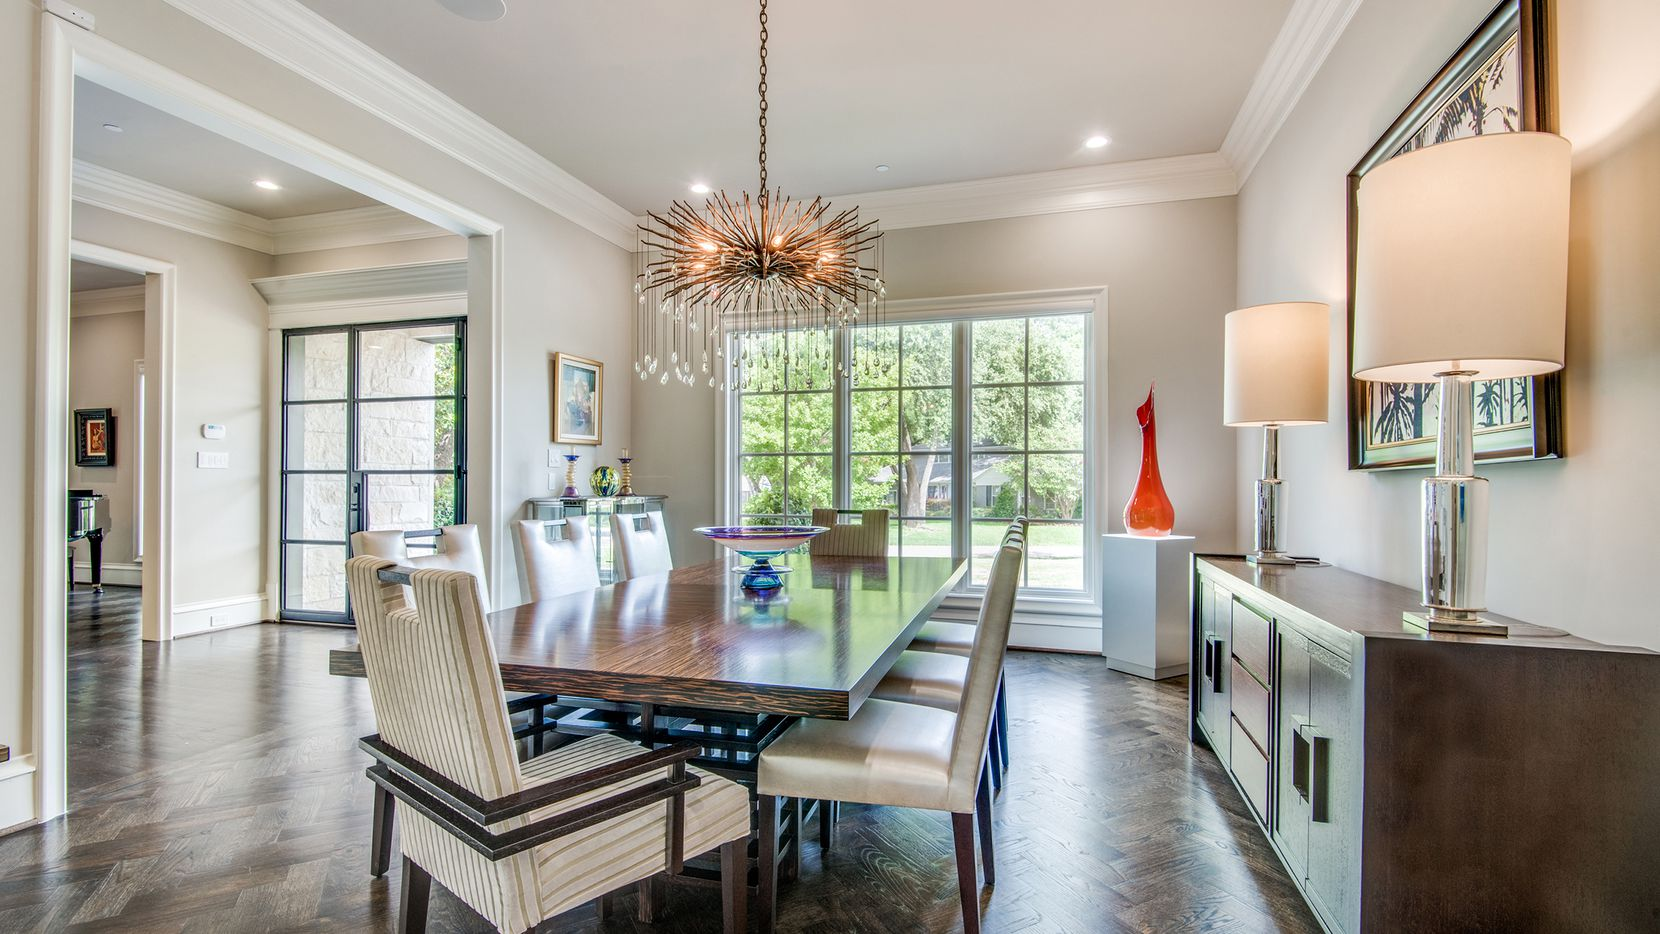 Designed by Richard Drummond Davis, the home at 9110 Rockbrook Drive features five bedrooms, contemporary finishes and a pool.